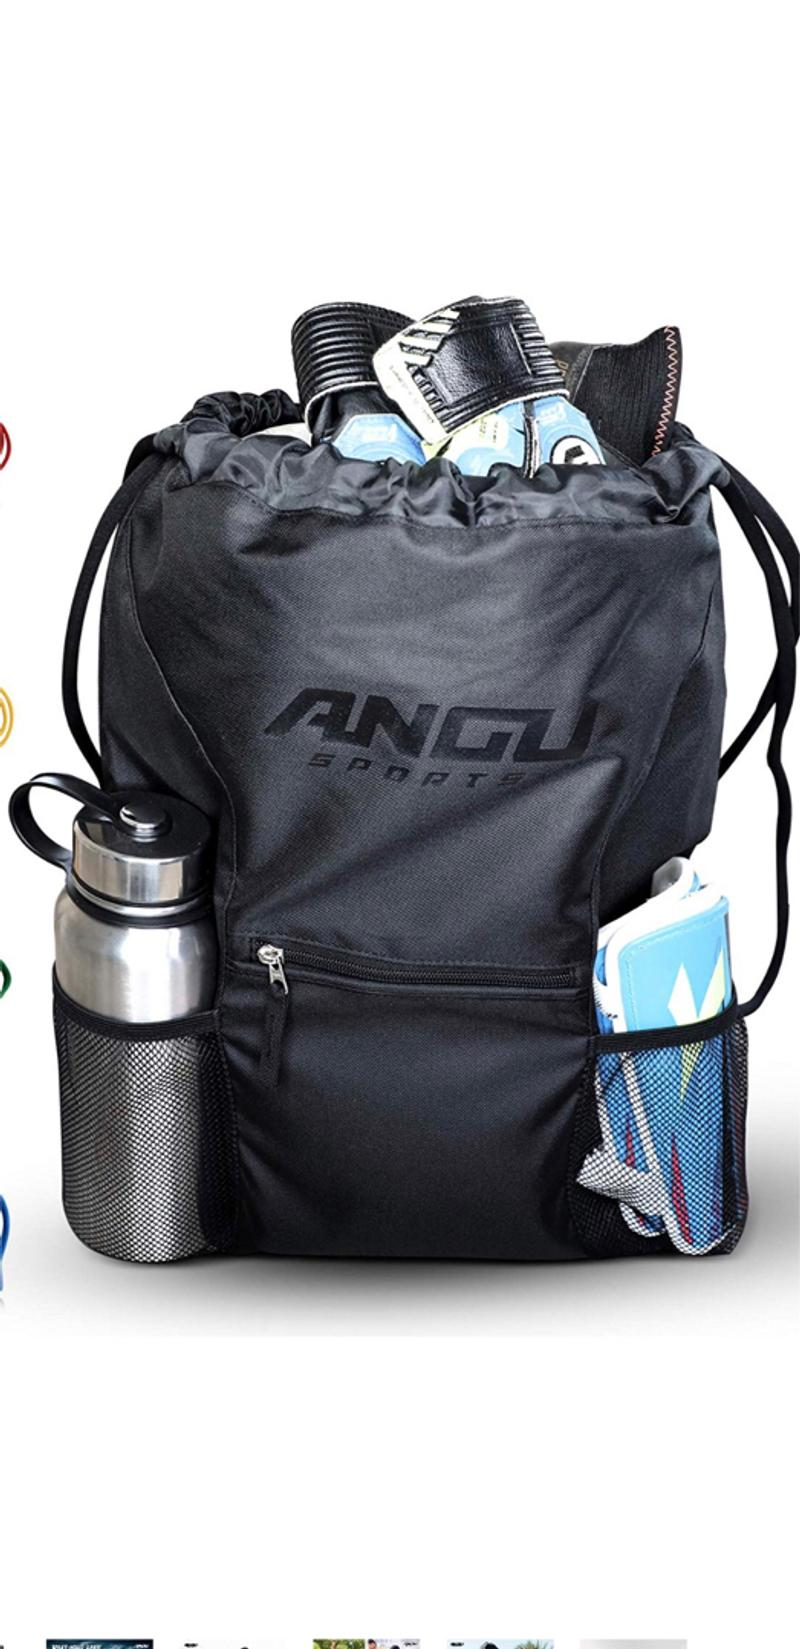 Photo ANGU SPORTS Youth Soccer Bag with Ball Holder for Kids, Girls, Boys, Men Women Soccer Backpack Great for Basketball, Football, Gym Bag, Volleyball, Lacrosse Drawstring Perfect for Sport Black